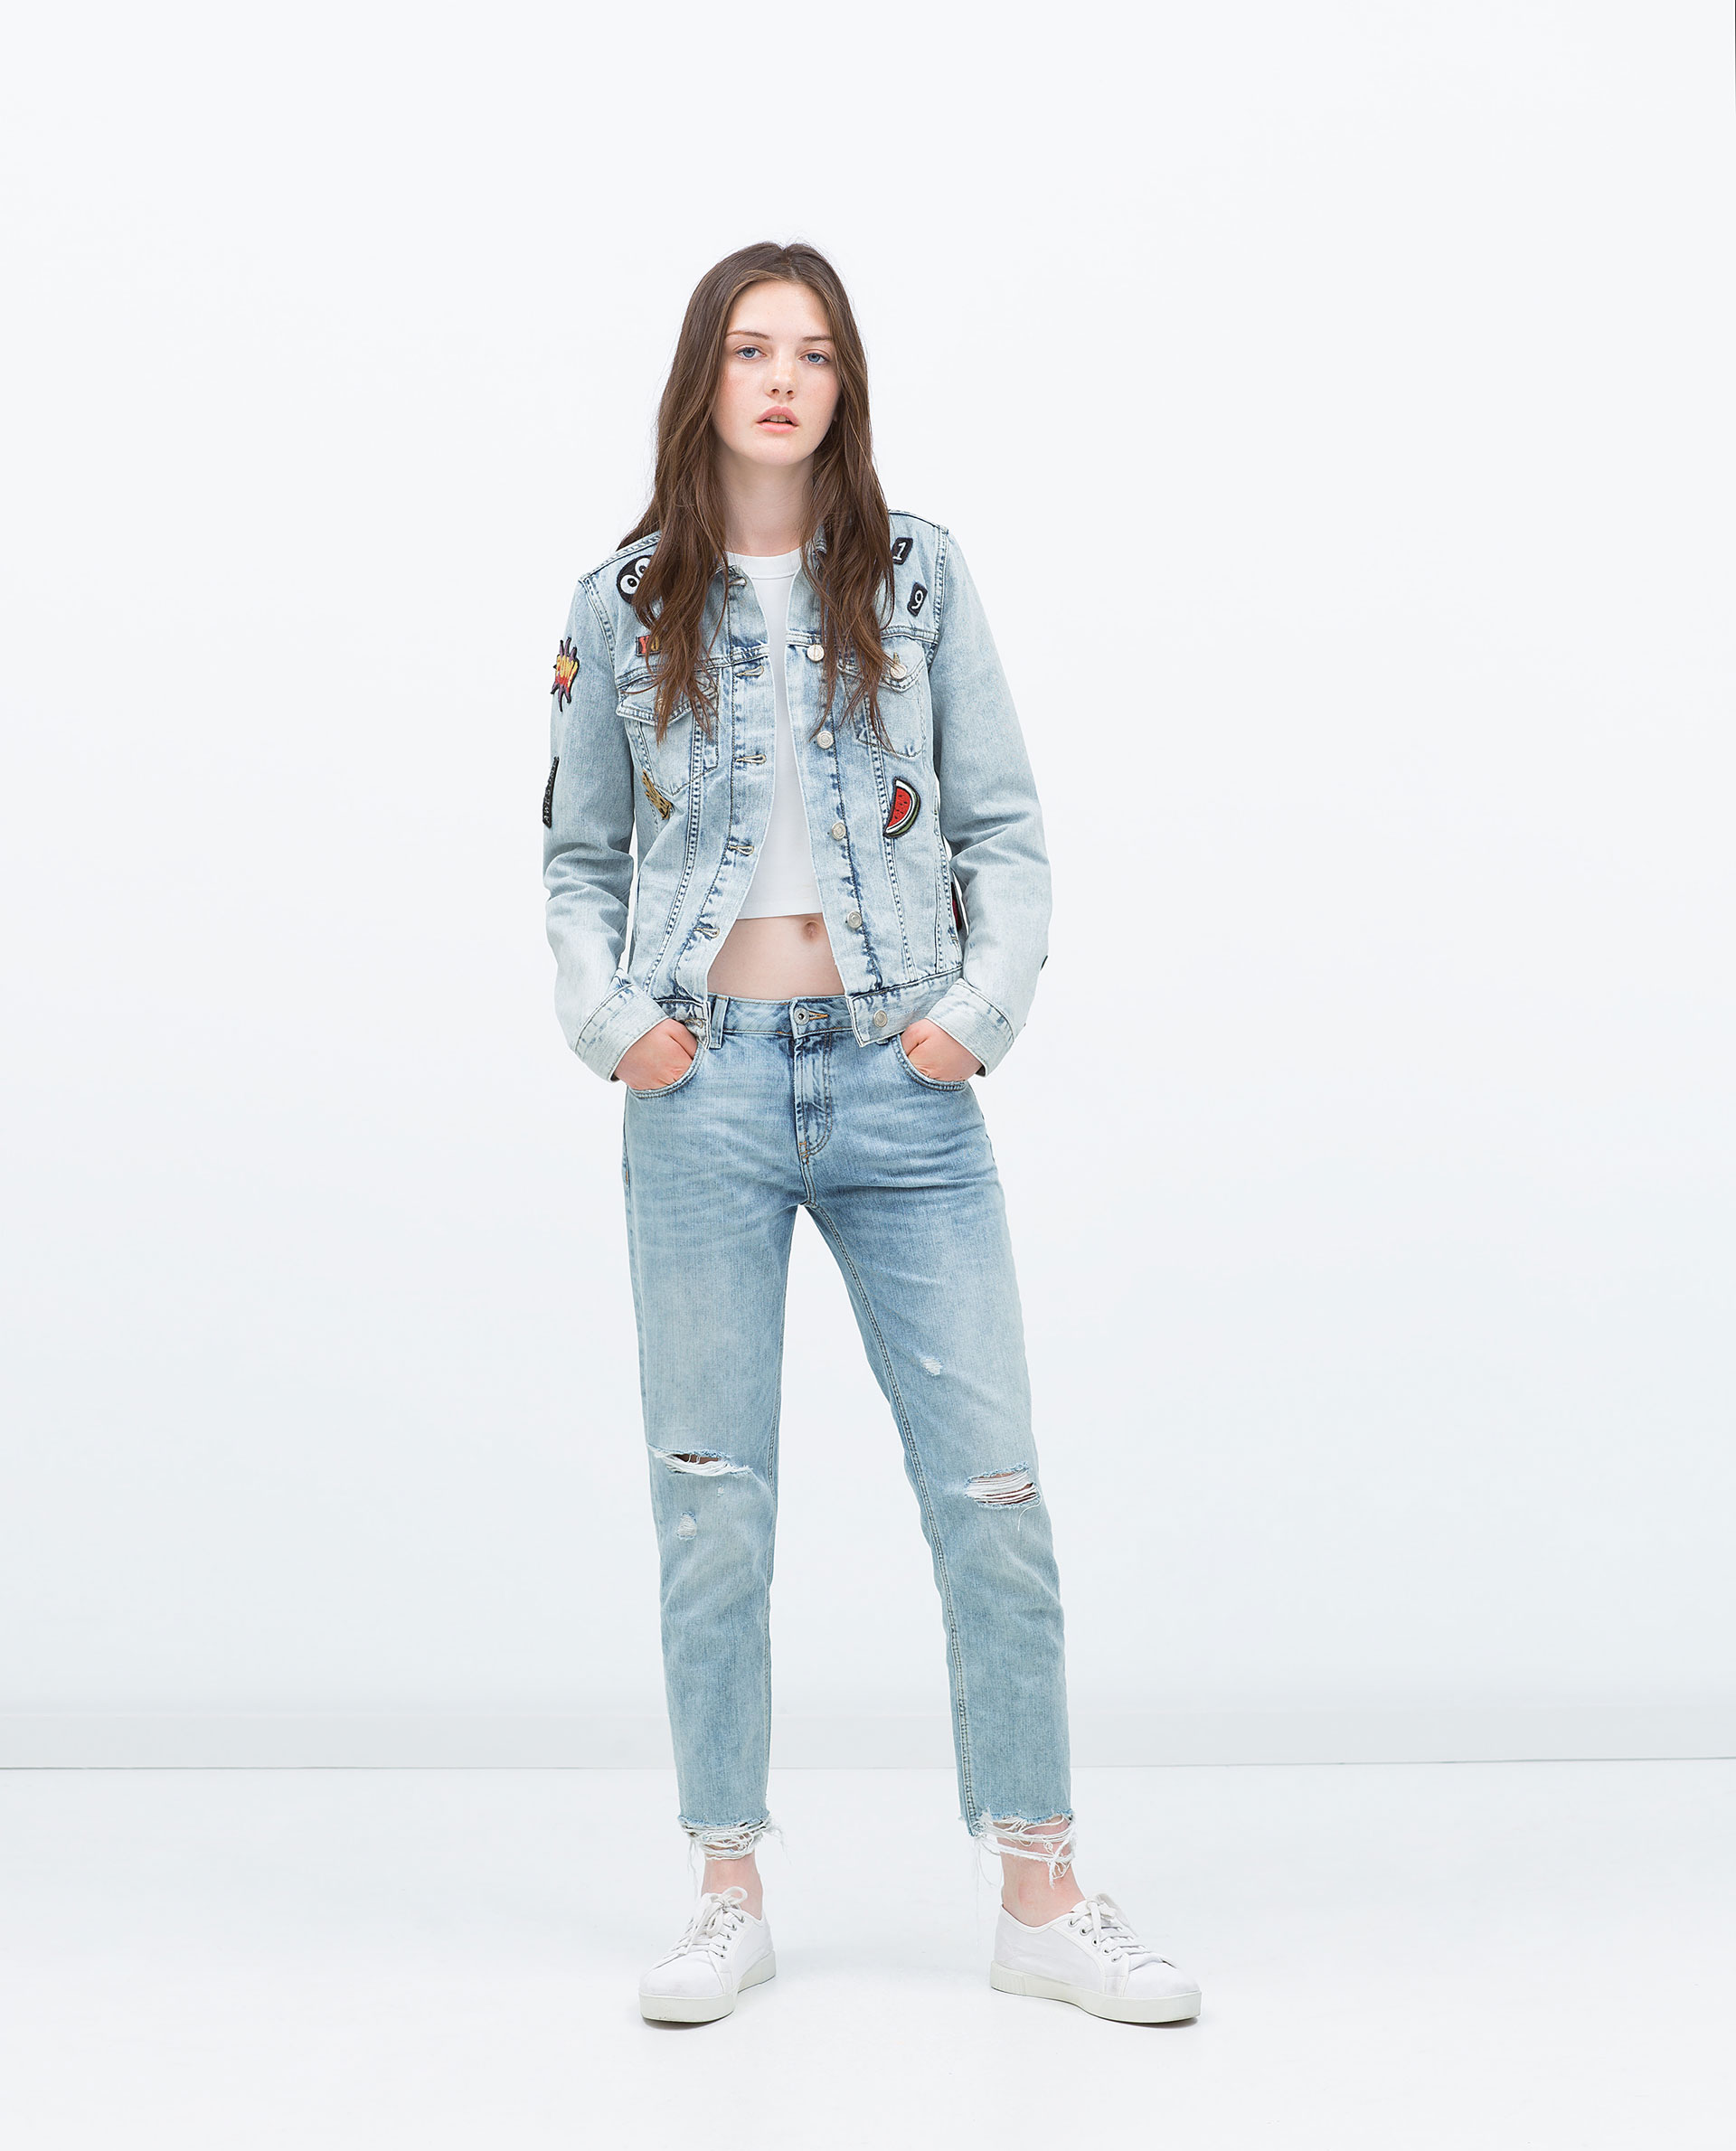 Zara sale denim jacket